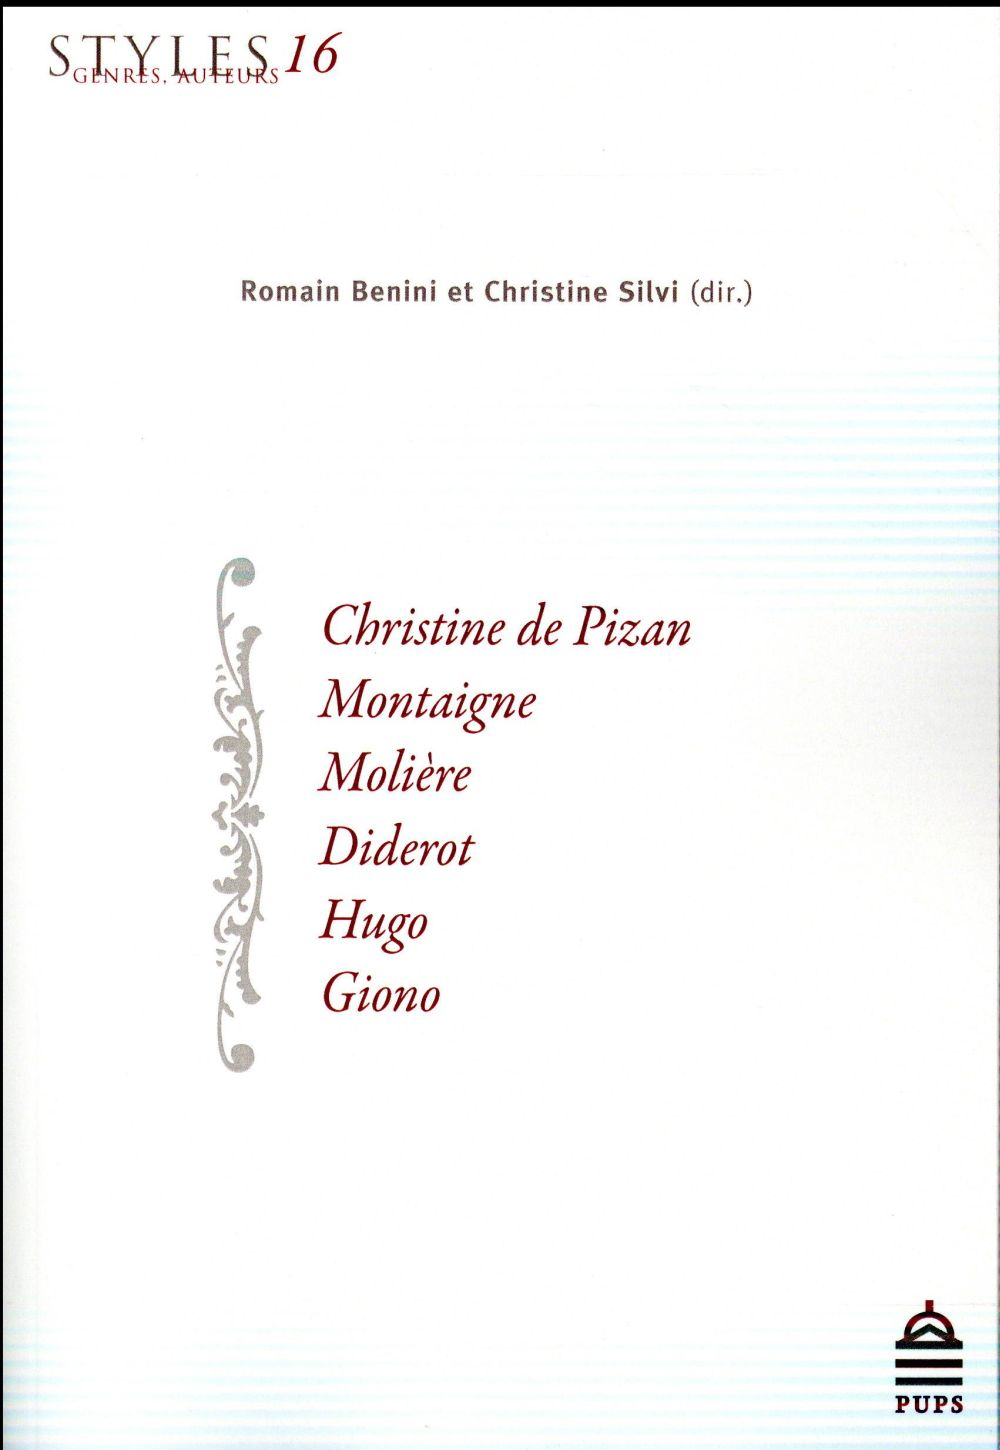 Styles, genres, auteurs 16 - christine de pizan, montaigne, moliere, diderot, hugo, giono